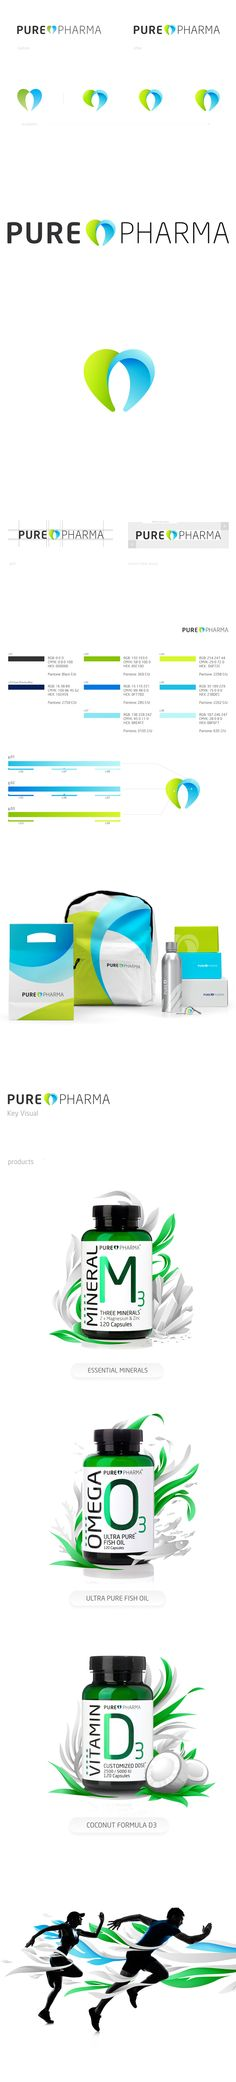 PurePharma by Fuse Collective, via Behance